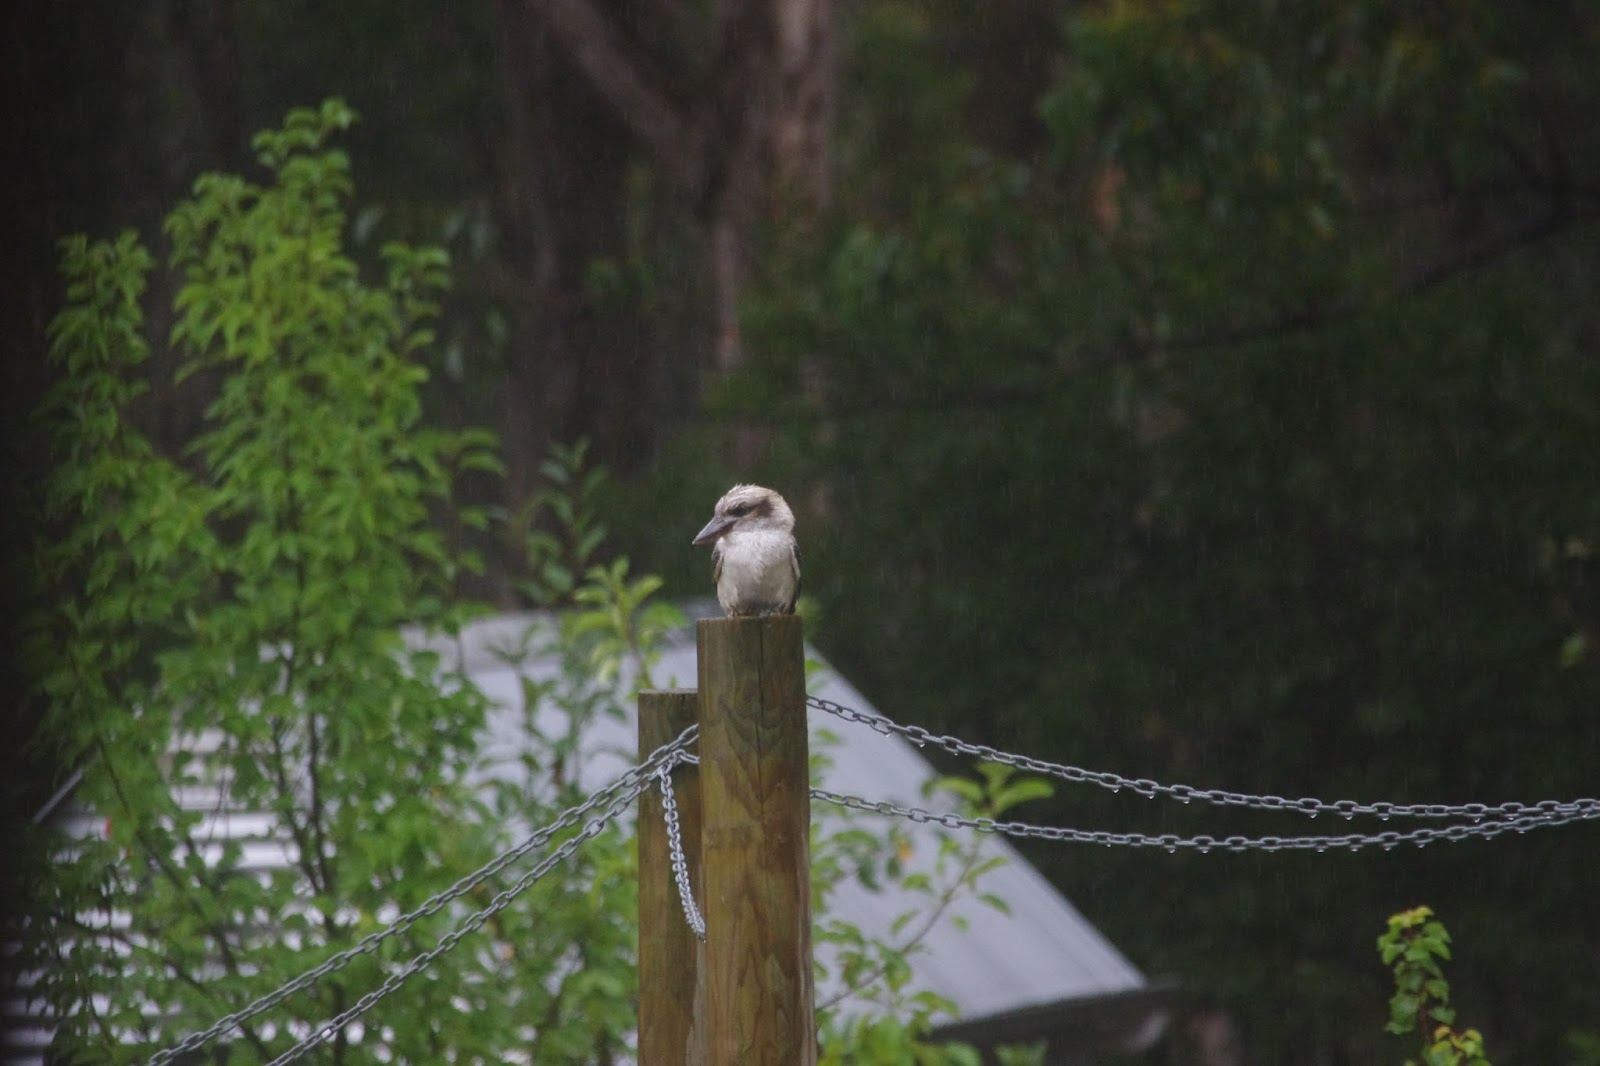 Kookaburra on a vine support post in the rain